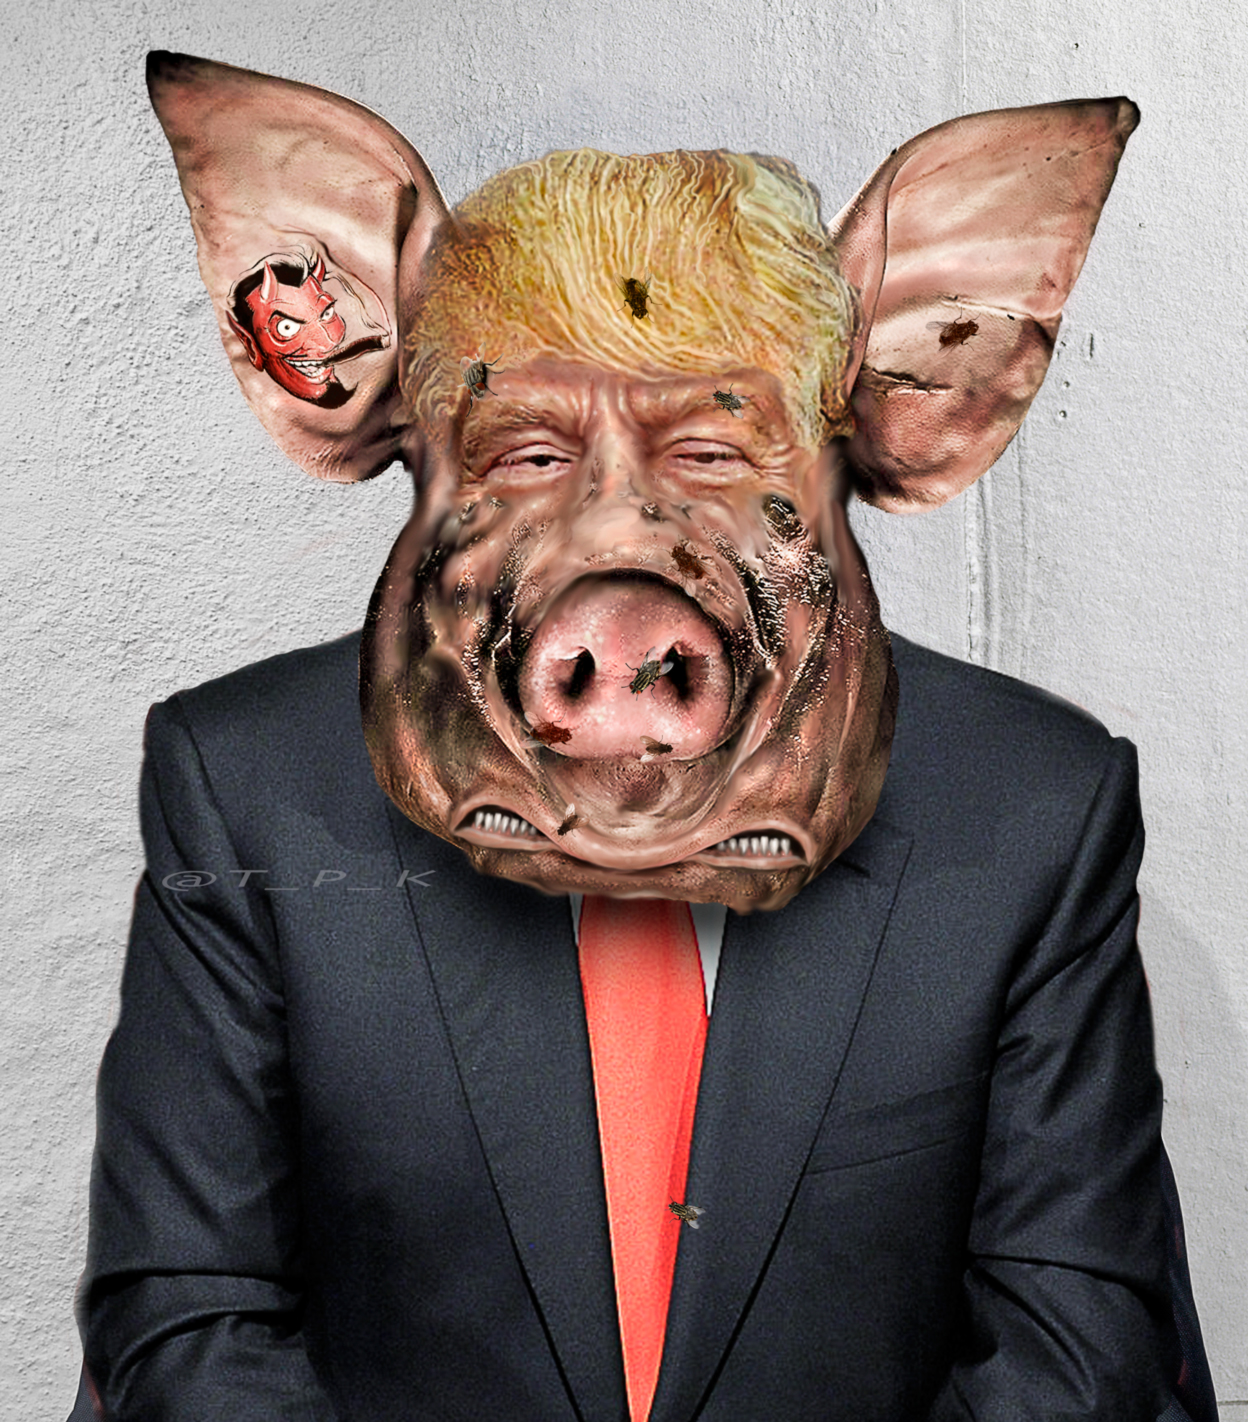 is donald drumpf lord of the flies is donald drumpf lord of the flies